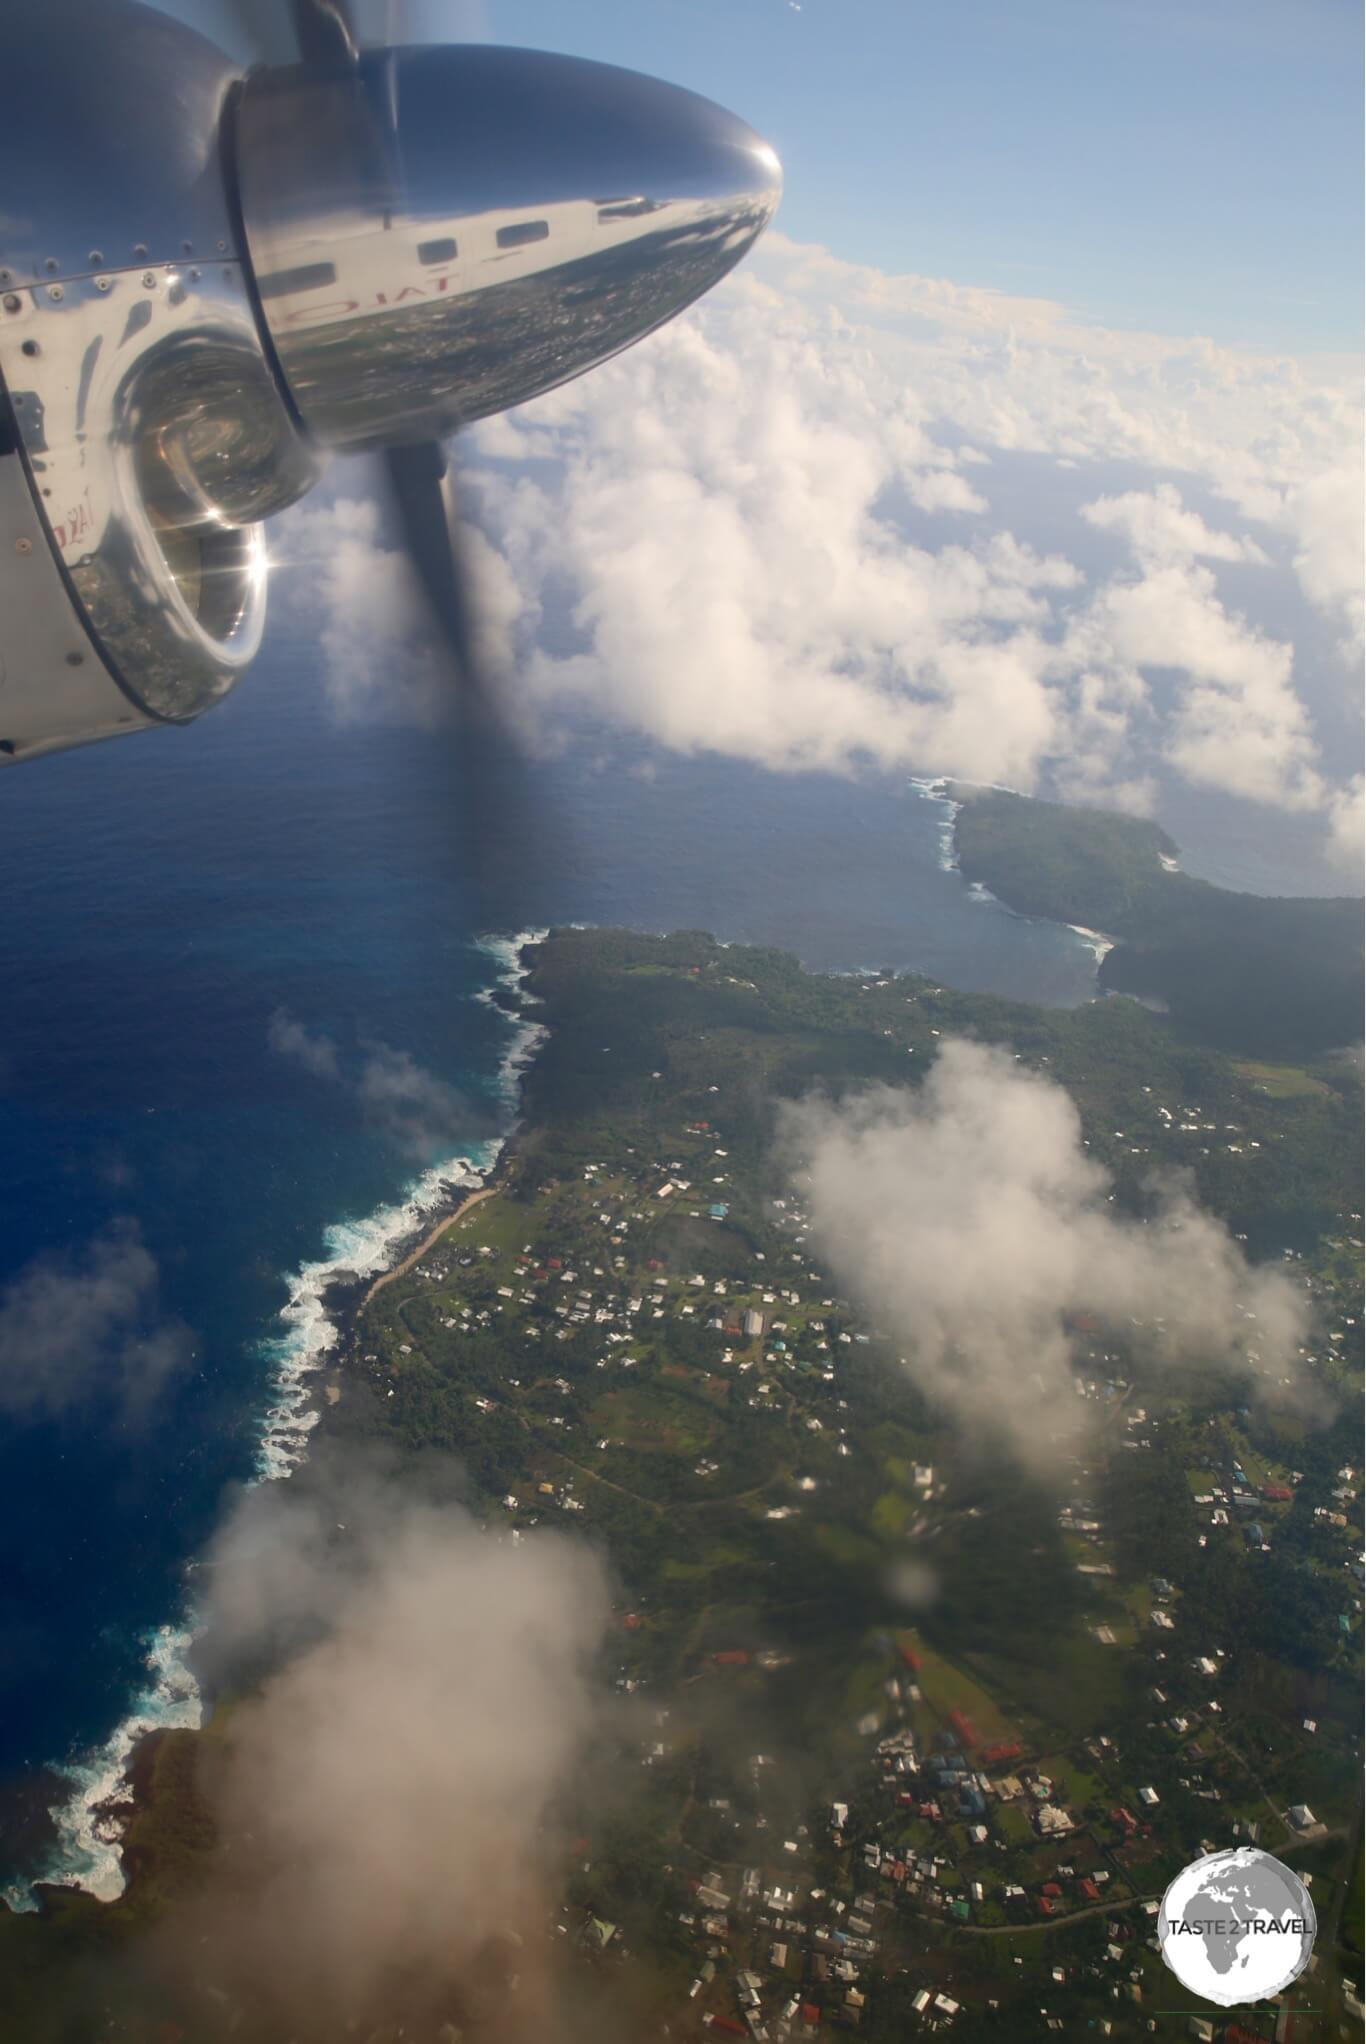 Flying out of American Samoa (from today) to Samoa (and into tomorrow).